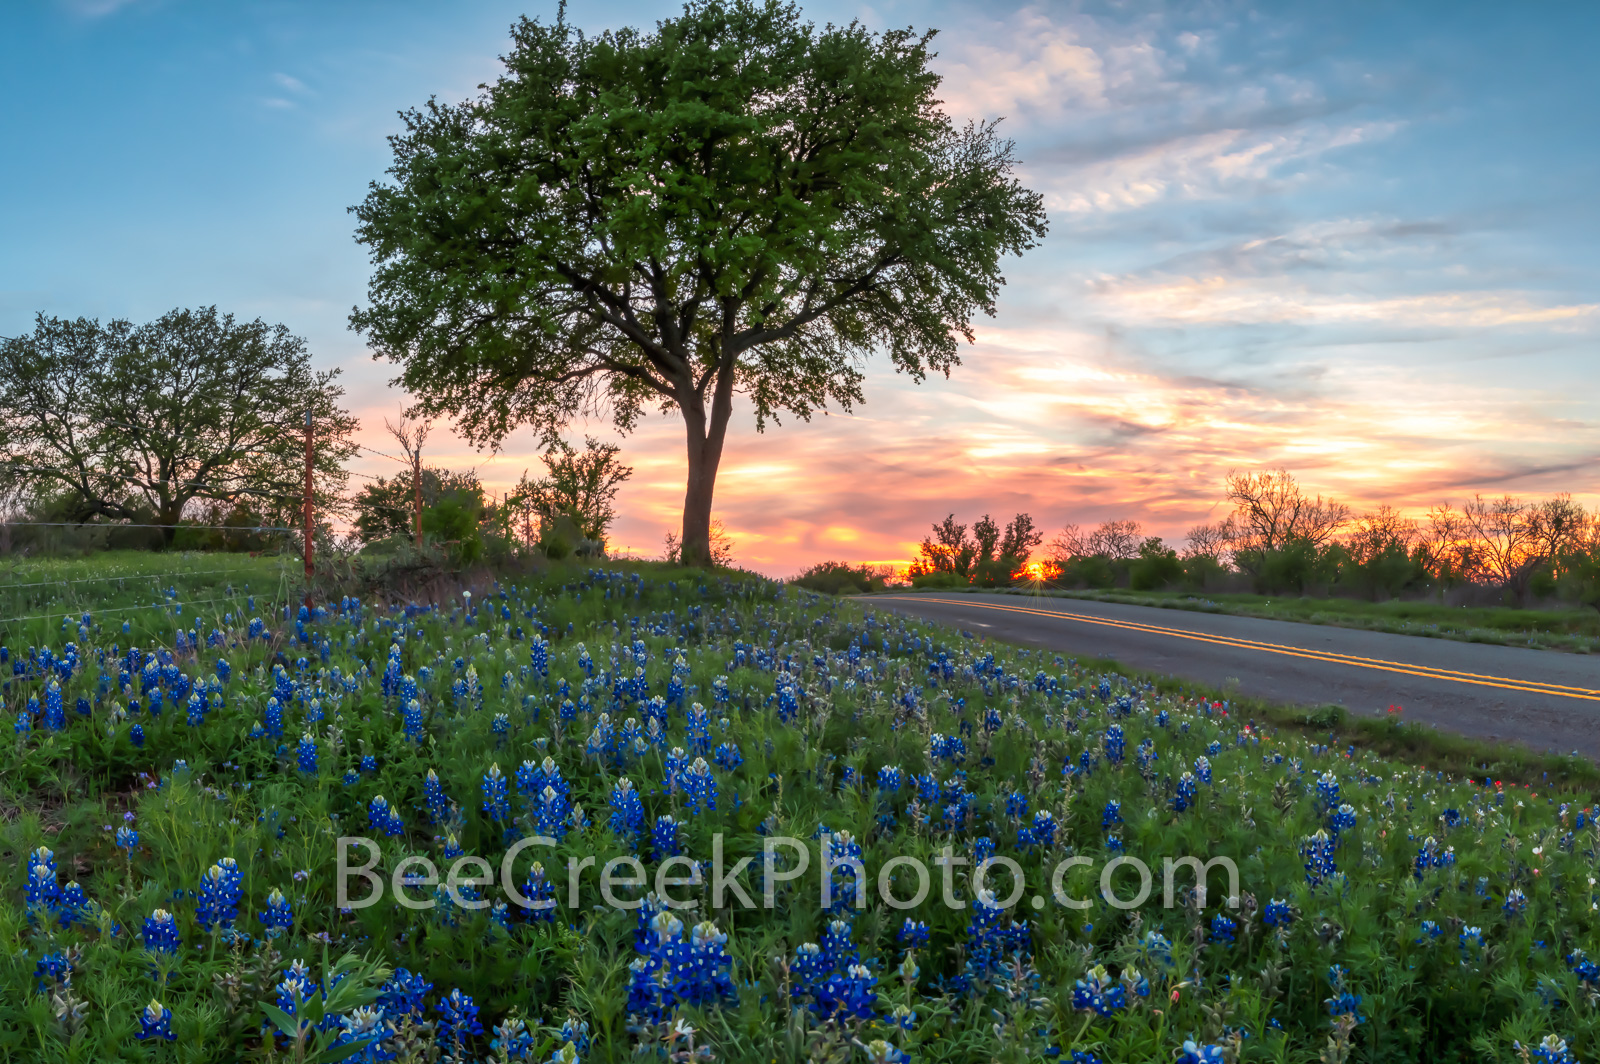 Roadside Bluebonnets at Sunset - Another great sunset with these roadside bluebonnets in the Texas hill country outside of Llano...